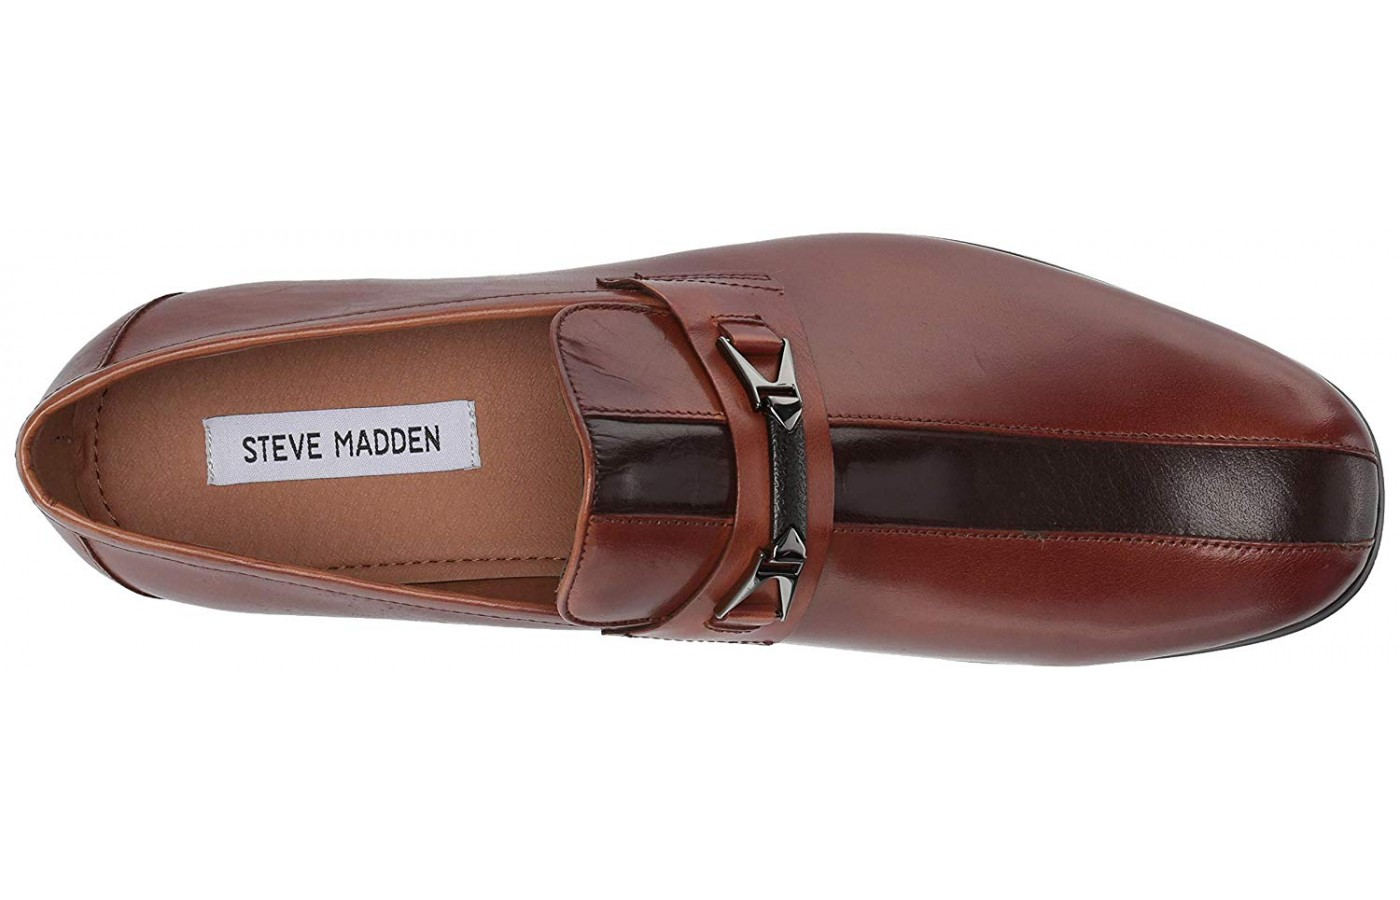 Steve Madden Graft Loafer top